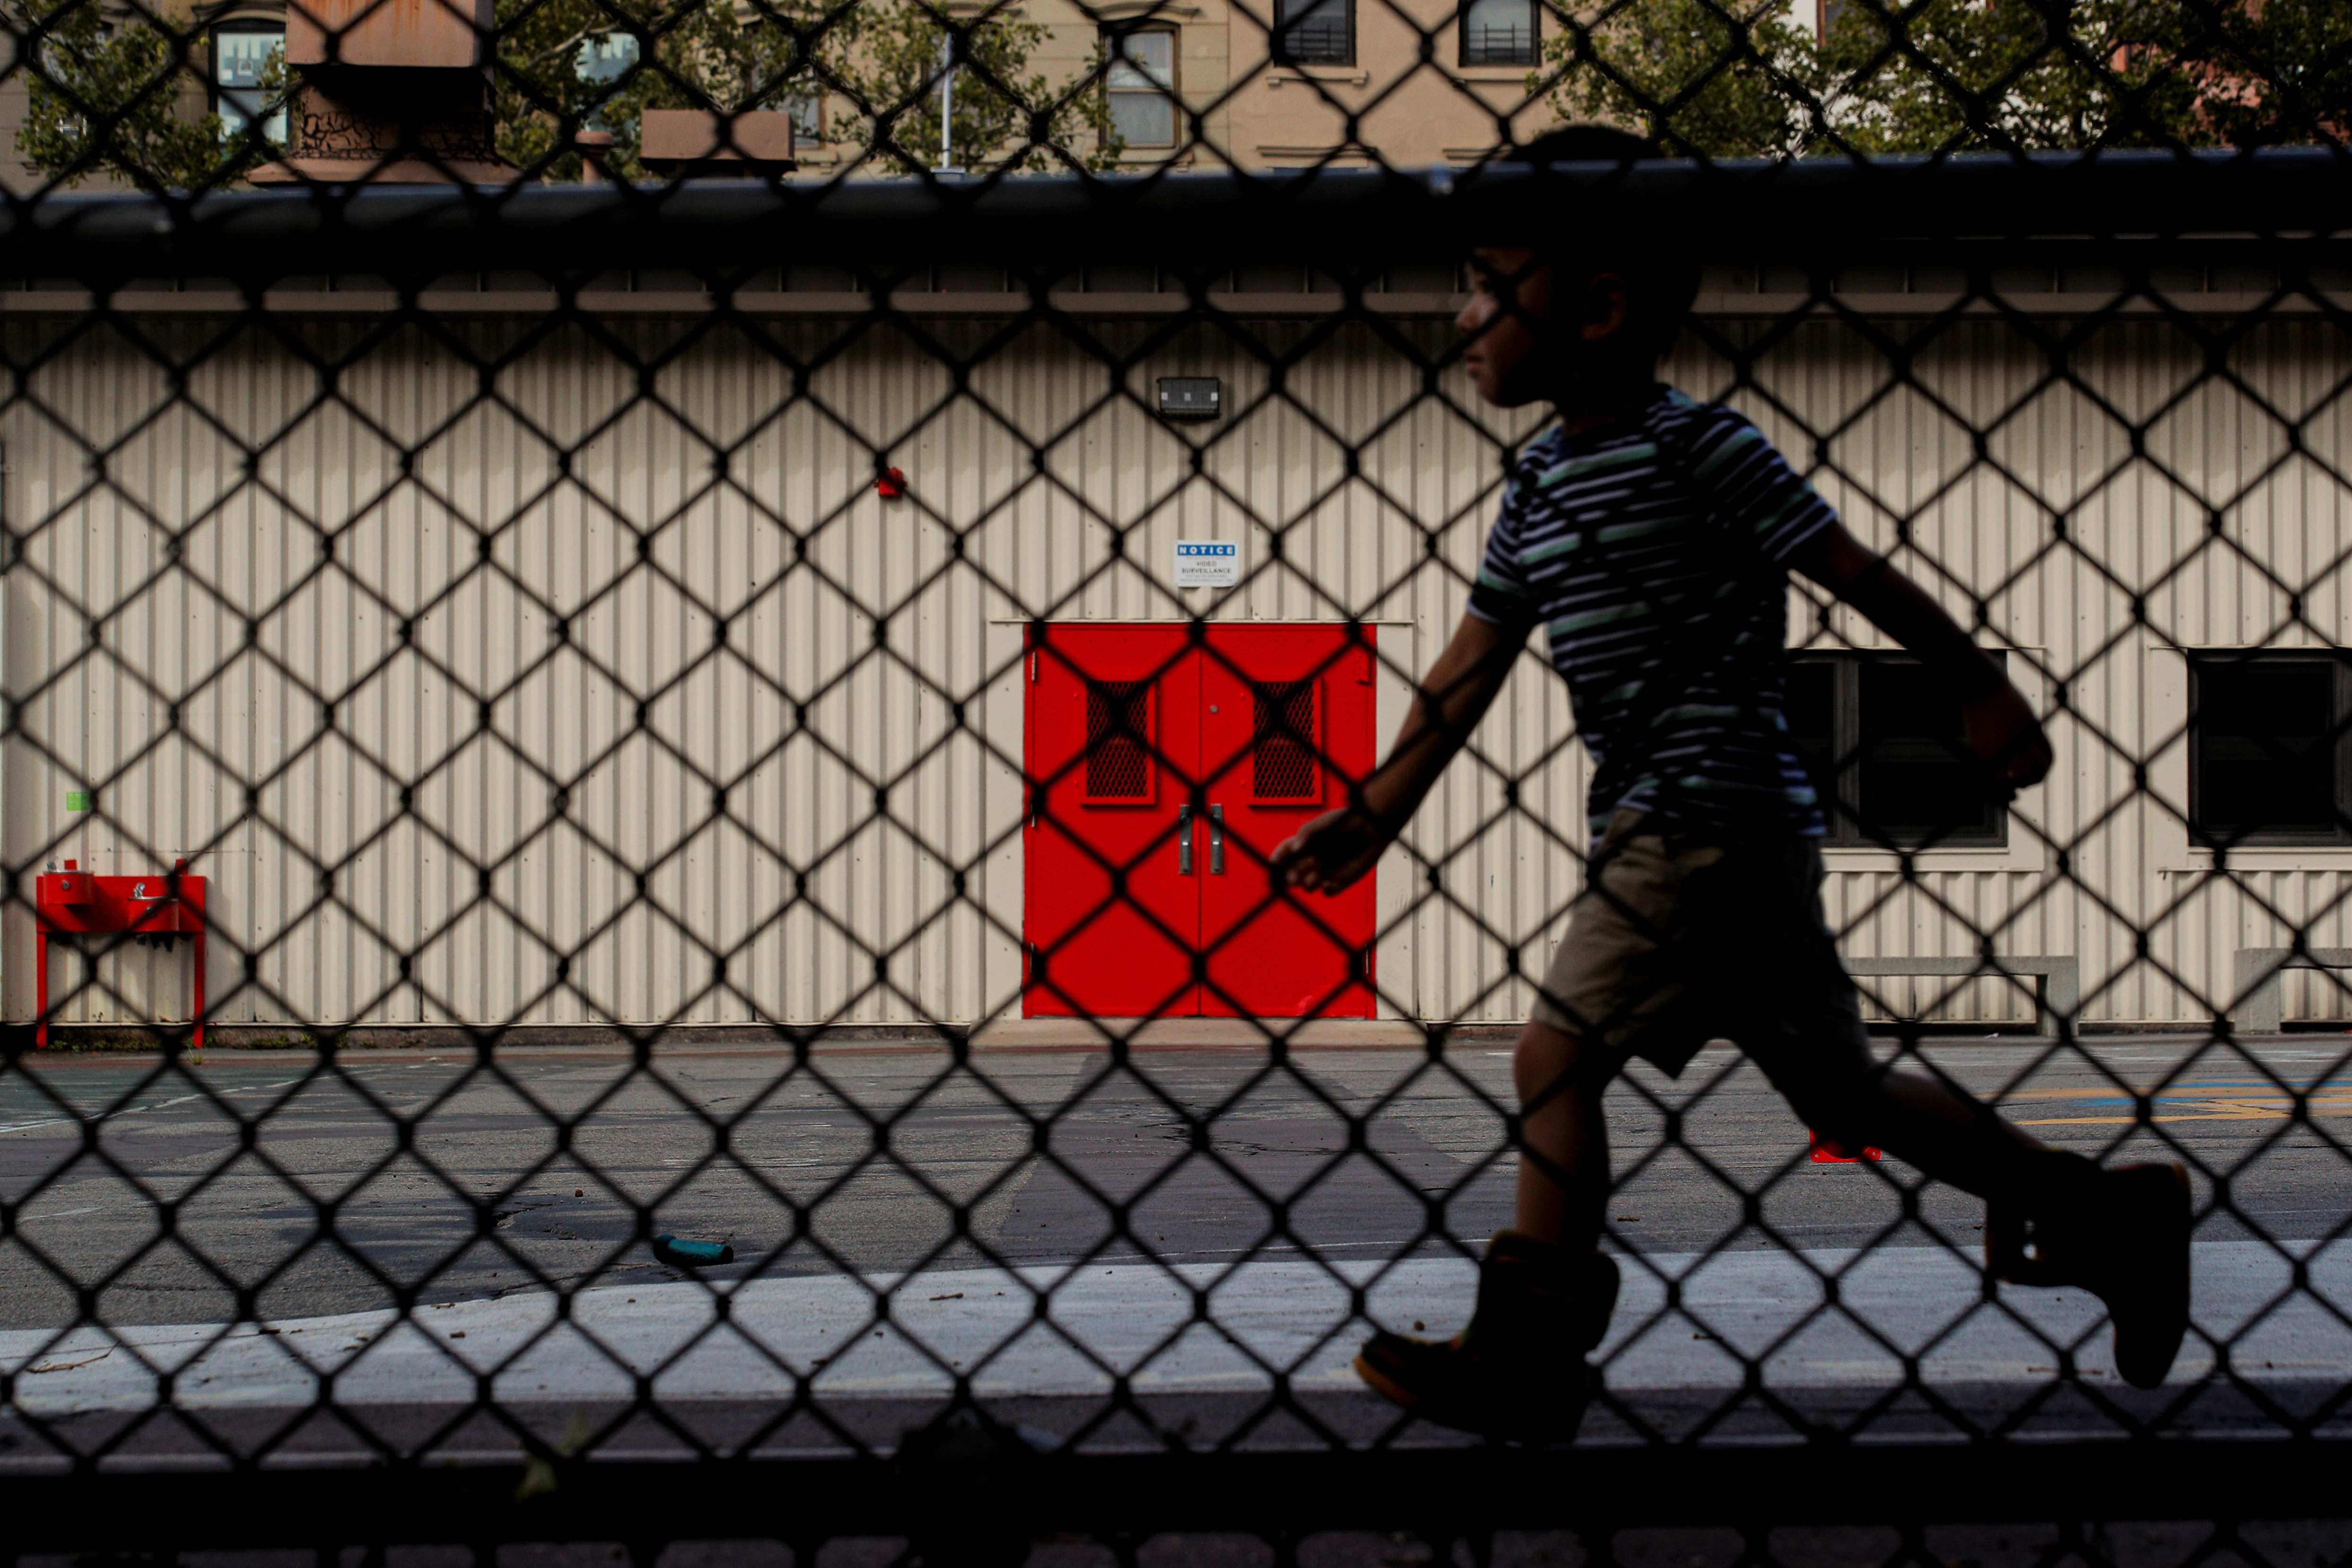 A child plays in the yard at New York Public School 321 in the Park Slope neighbourhood in Brooklyn, New York, U.S., August 7, 2020. REUTERS/Brendan McDermid - RC299I9N63ZA